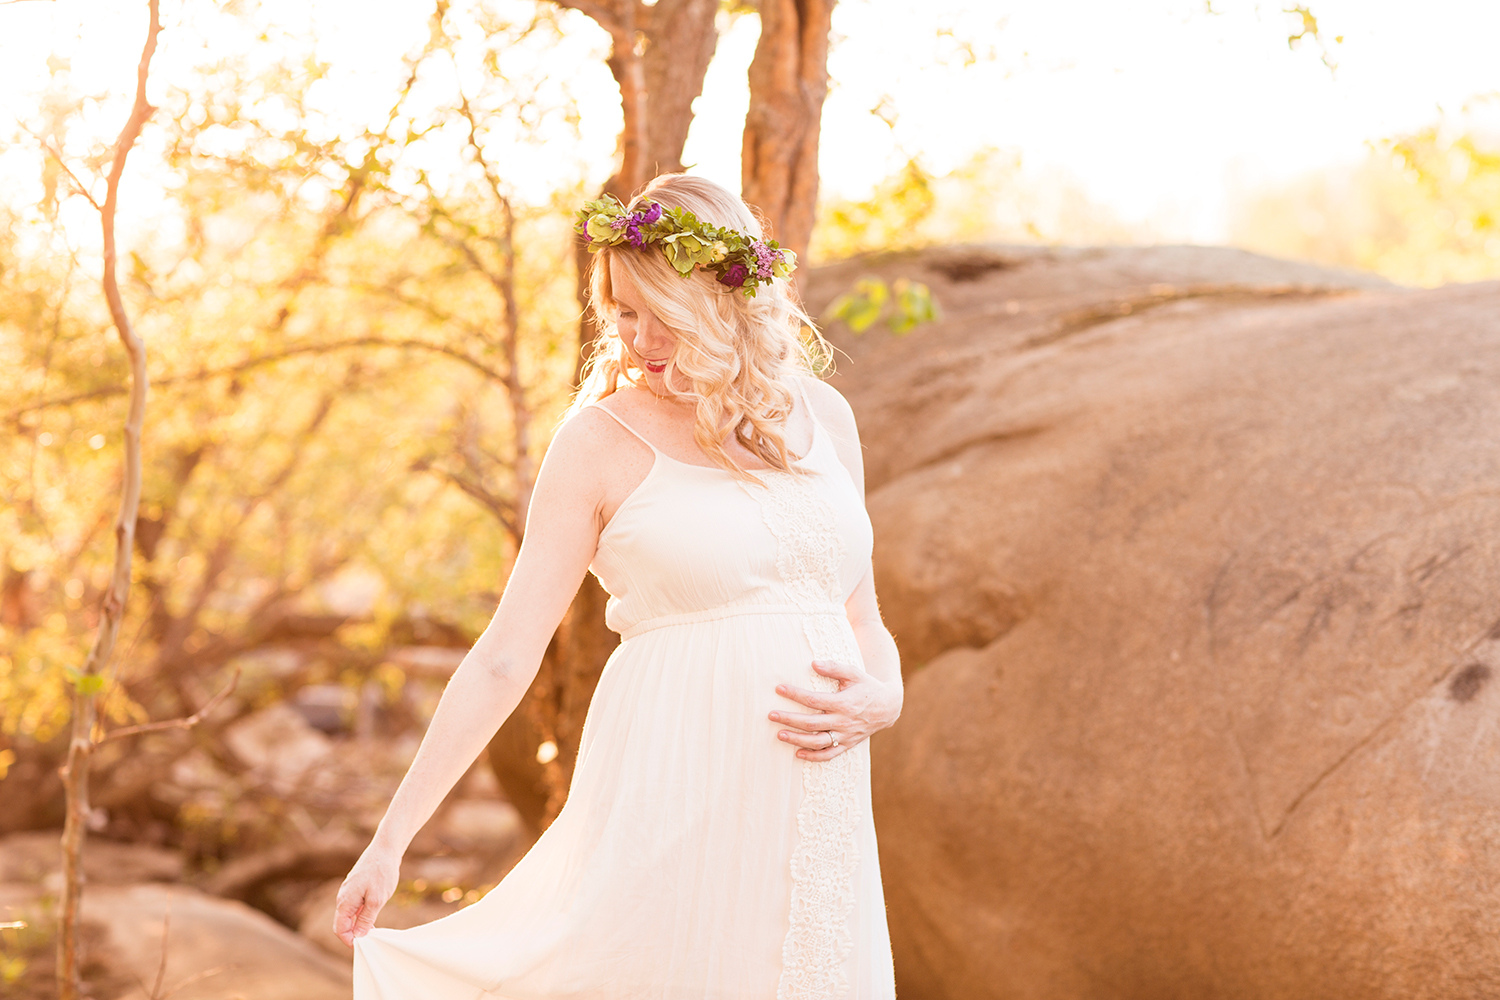 Kristin  Jesses Flower Crown Maternity Session - Image Property of www.j-dphoto.com